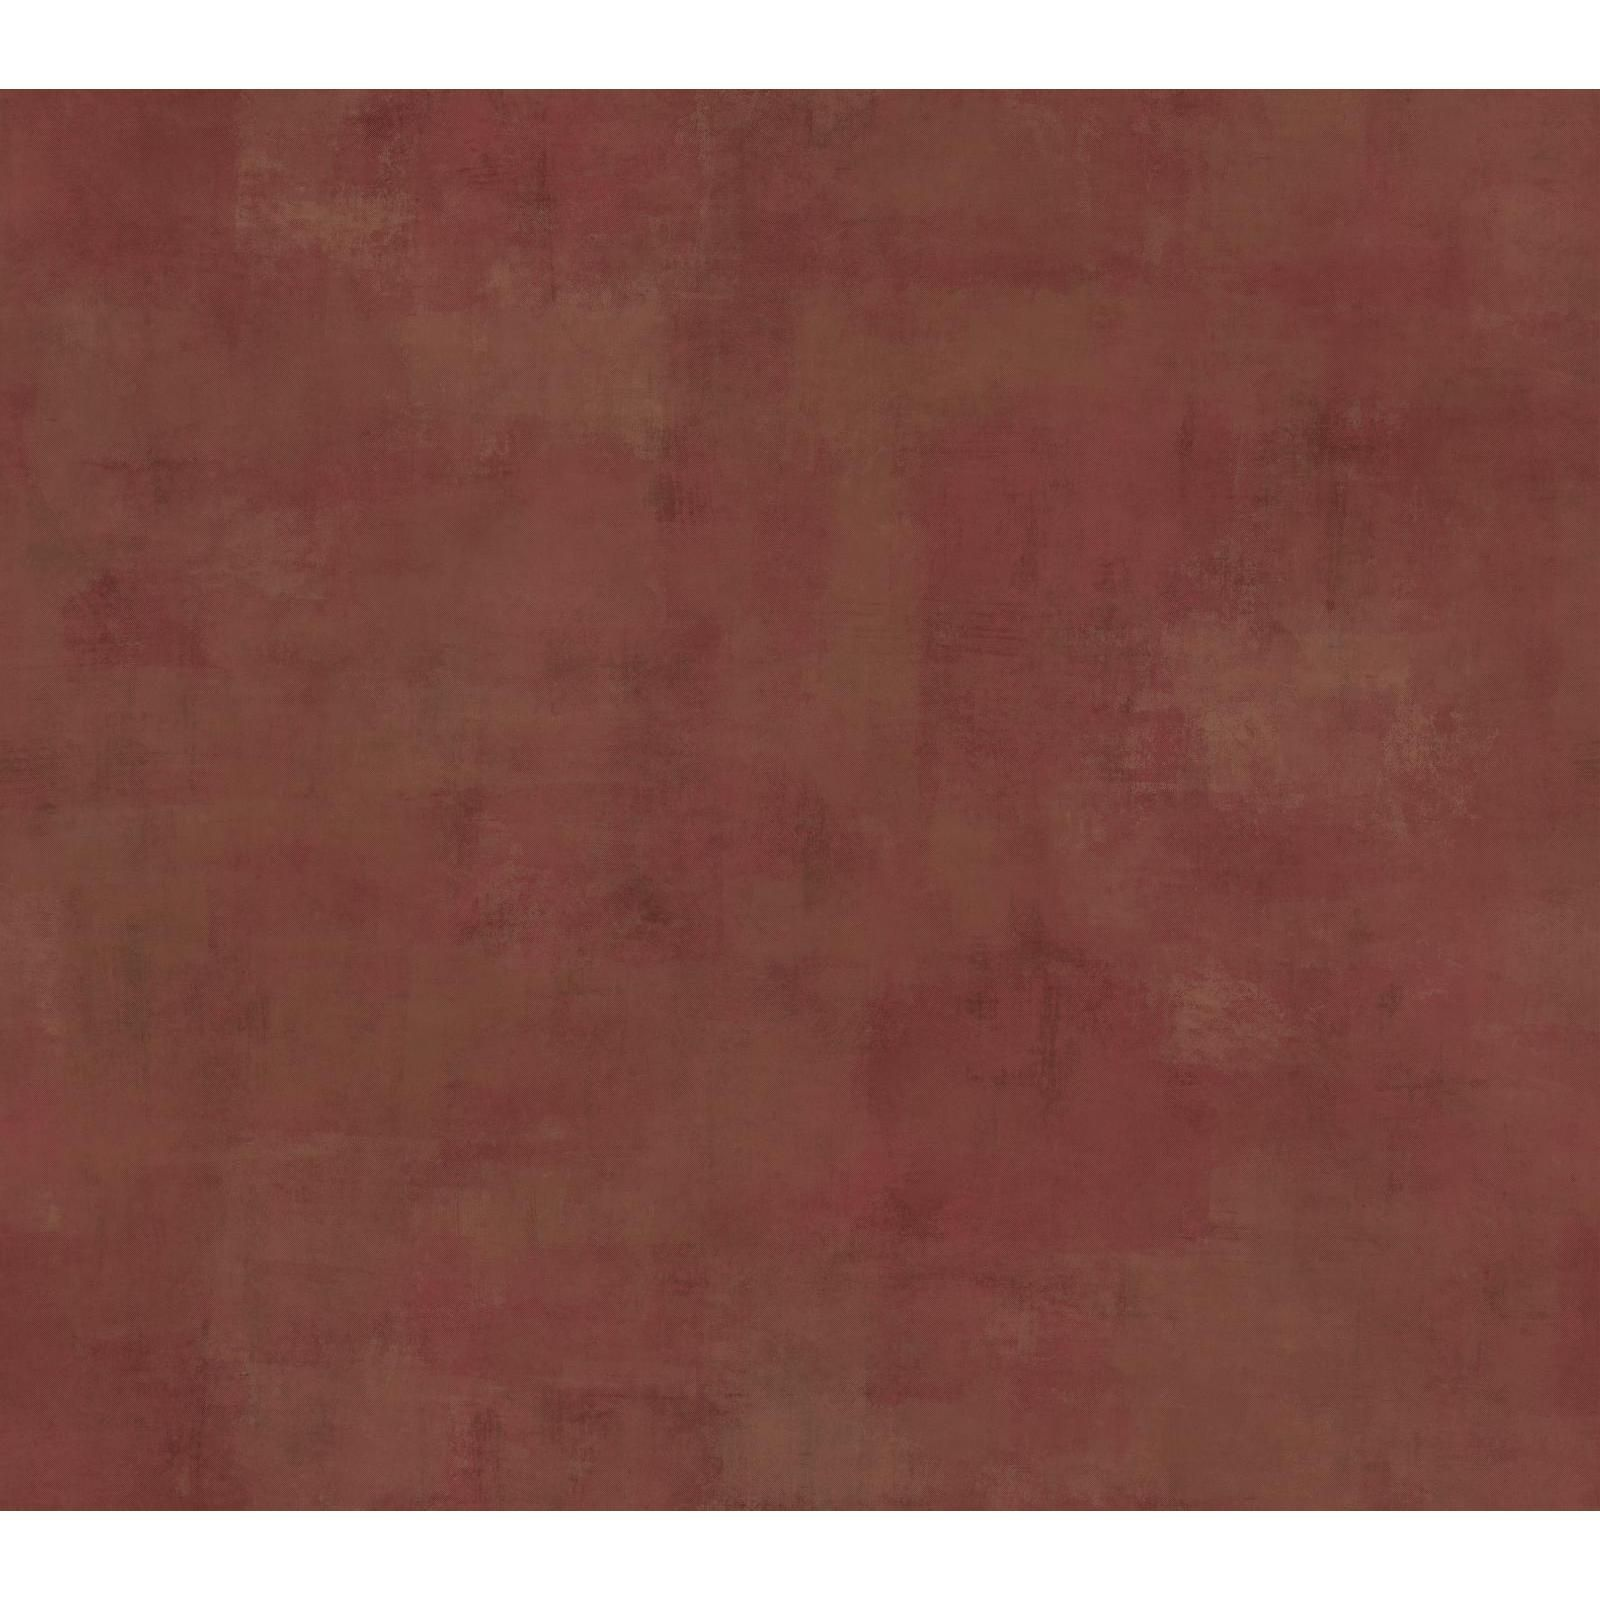 York Wallcoverings Red Stucco Texture Wallpaper in Red Deep